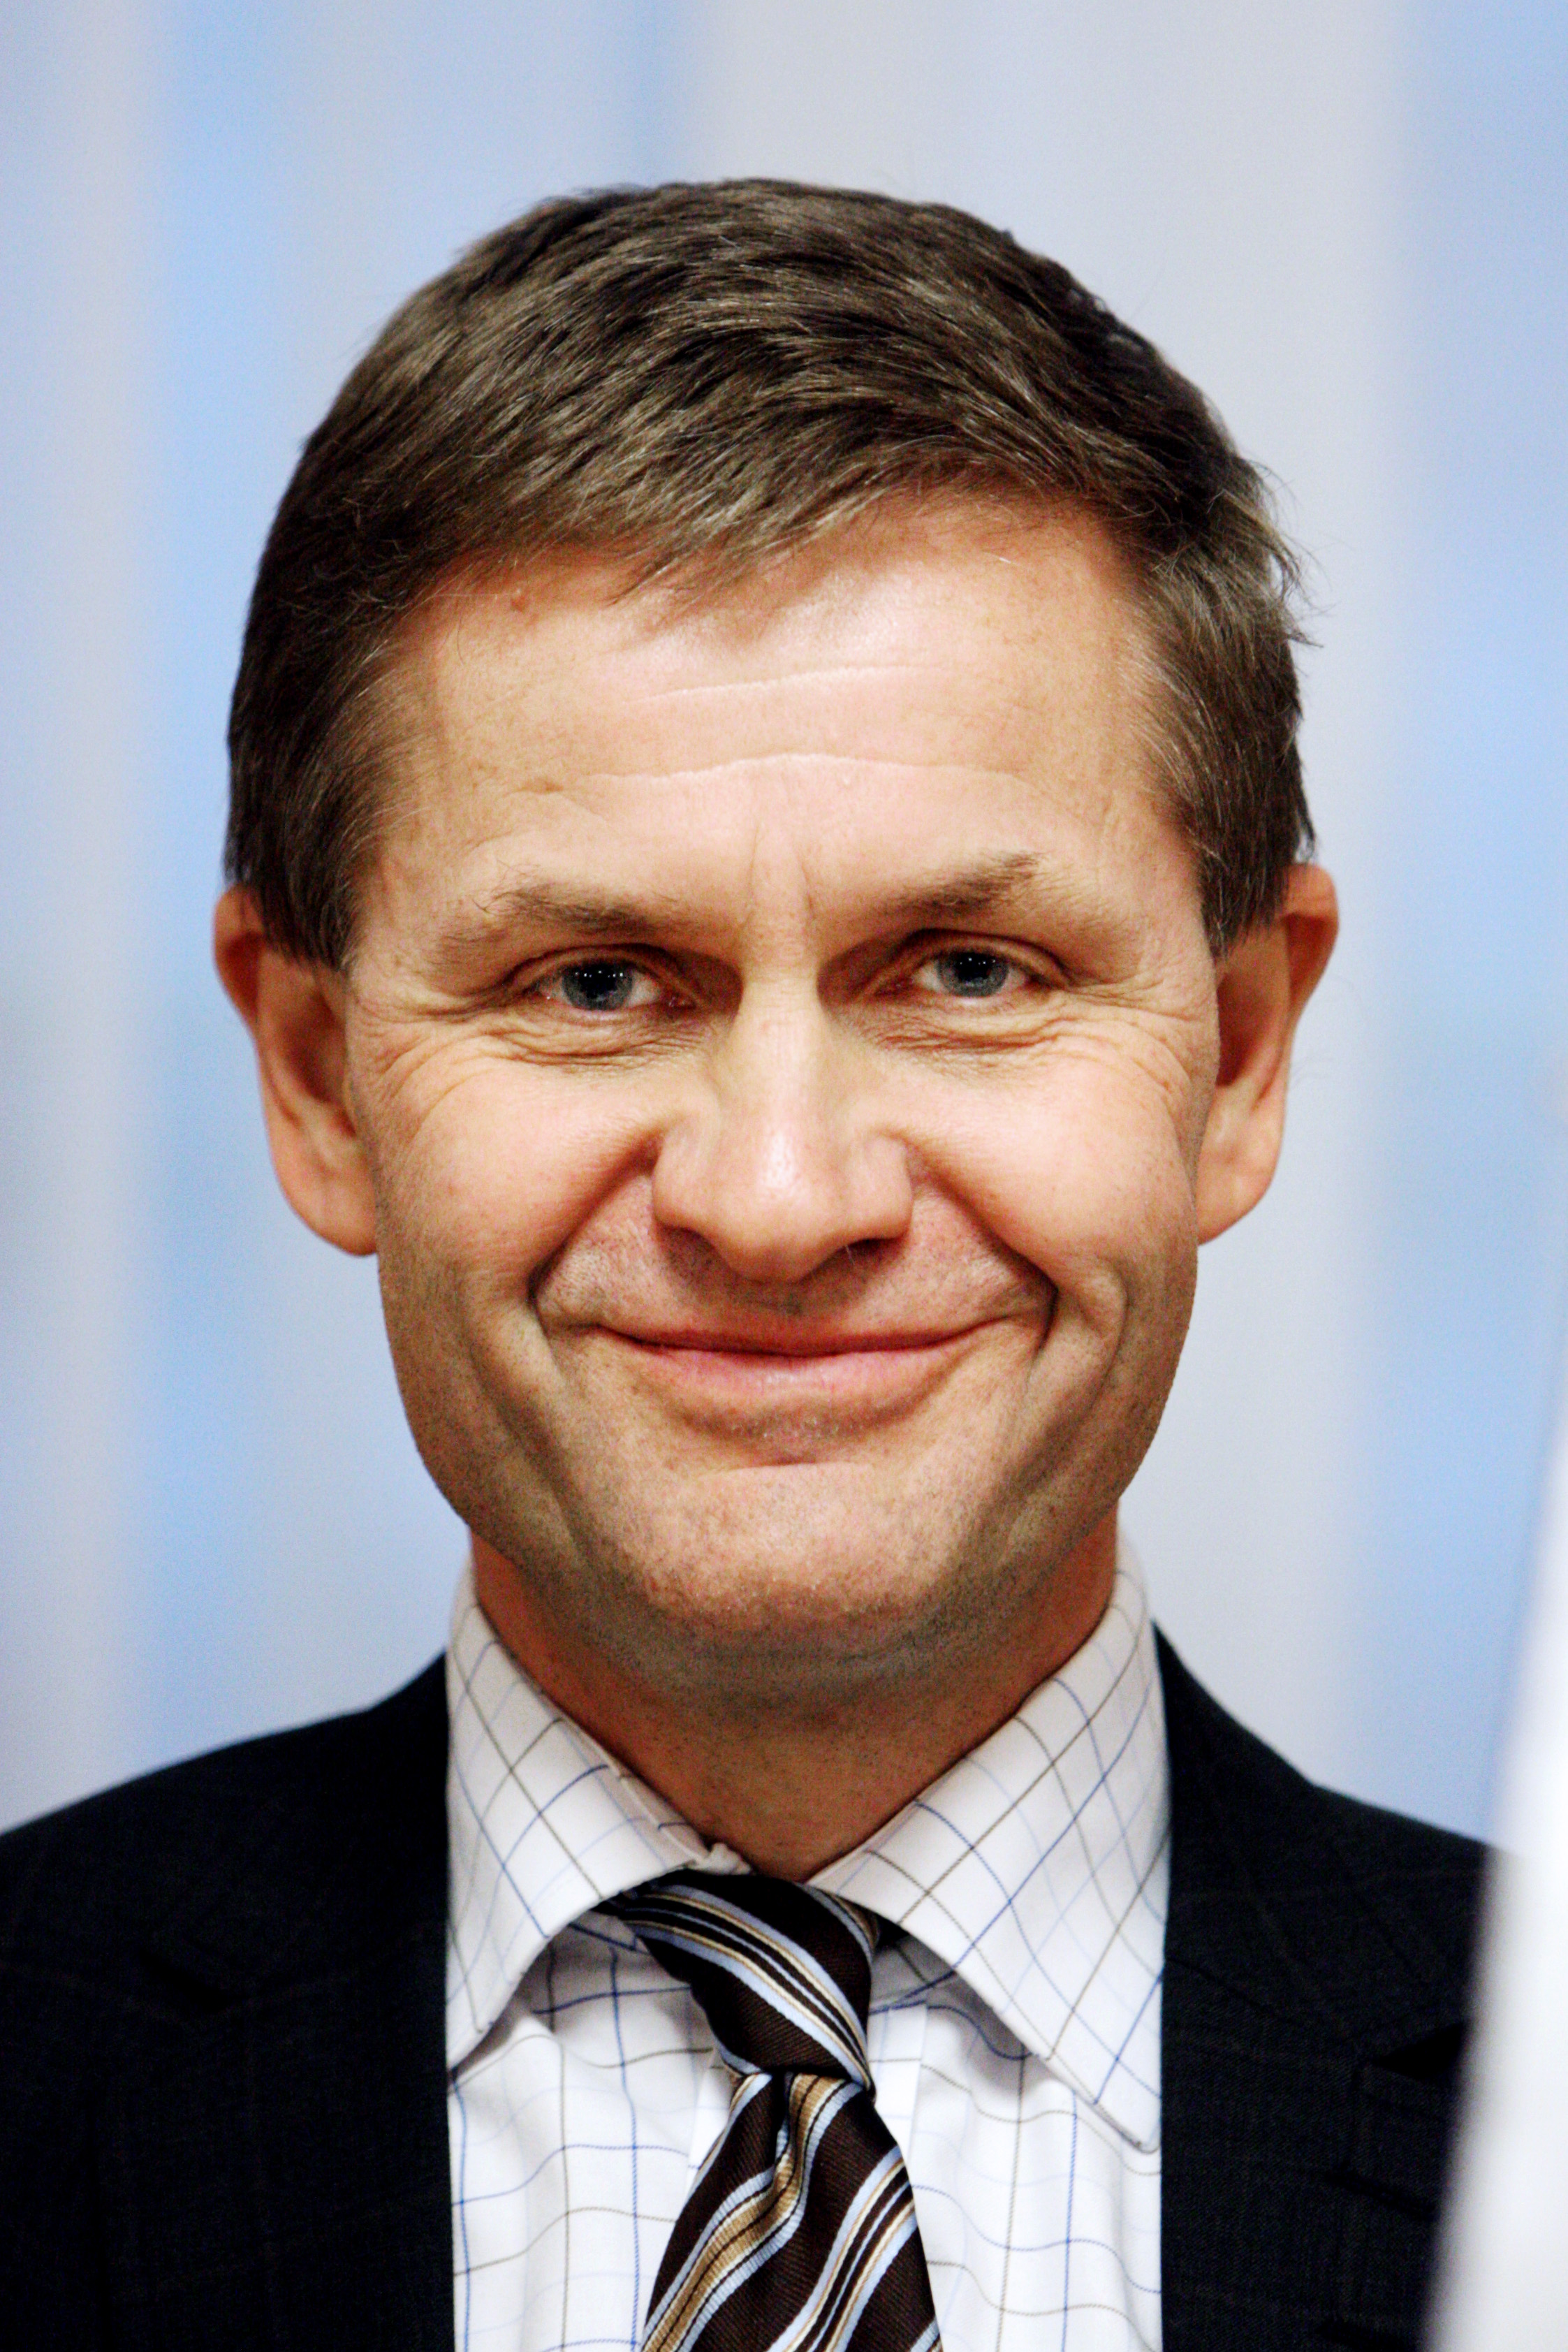 Minister of Environment and International Development Erik Solheim. Photo: Wikimedia Commons